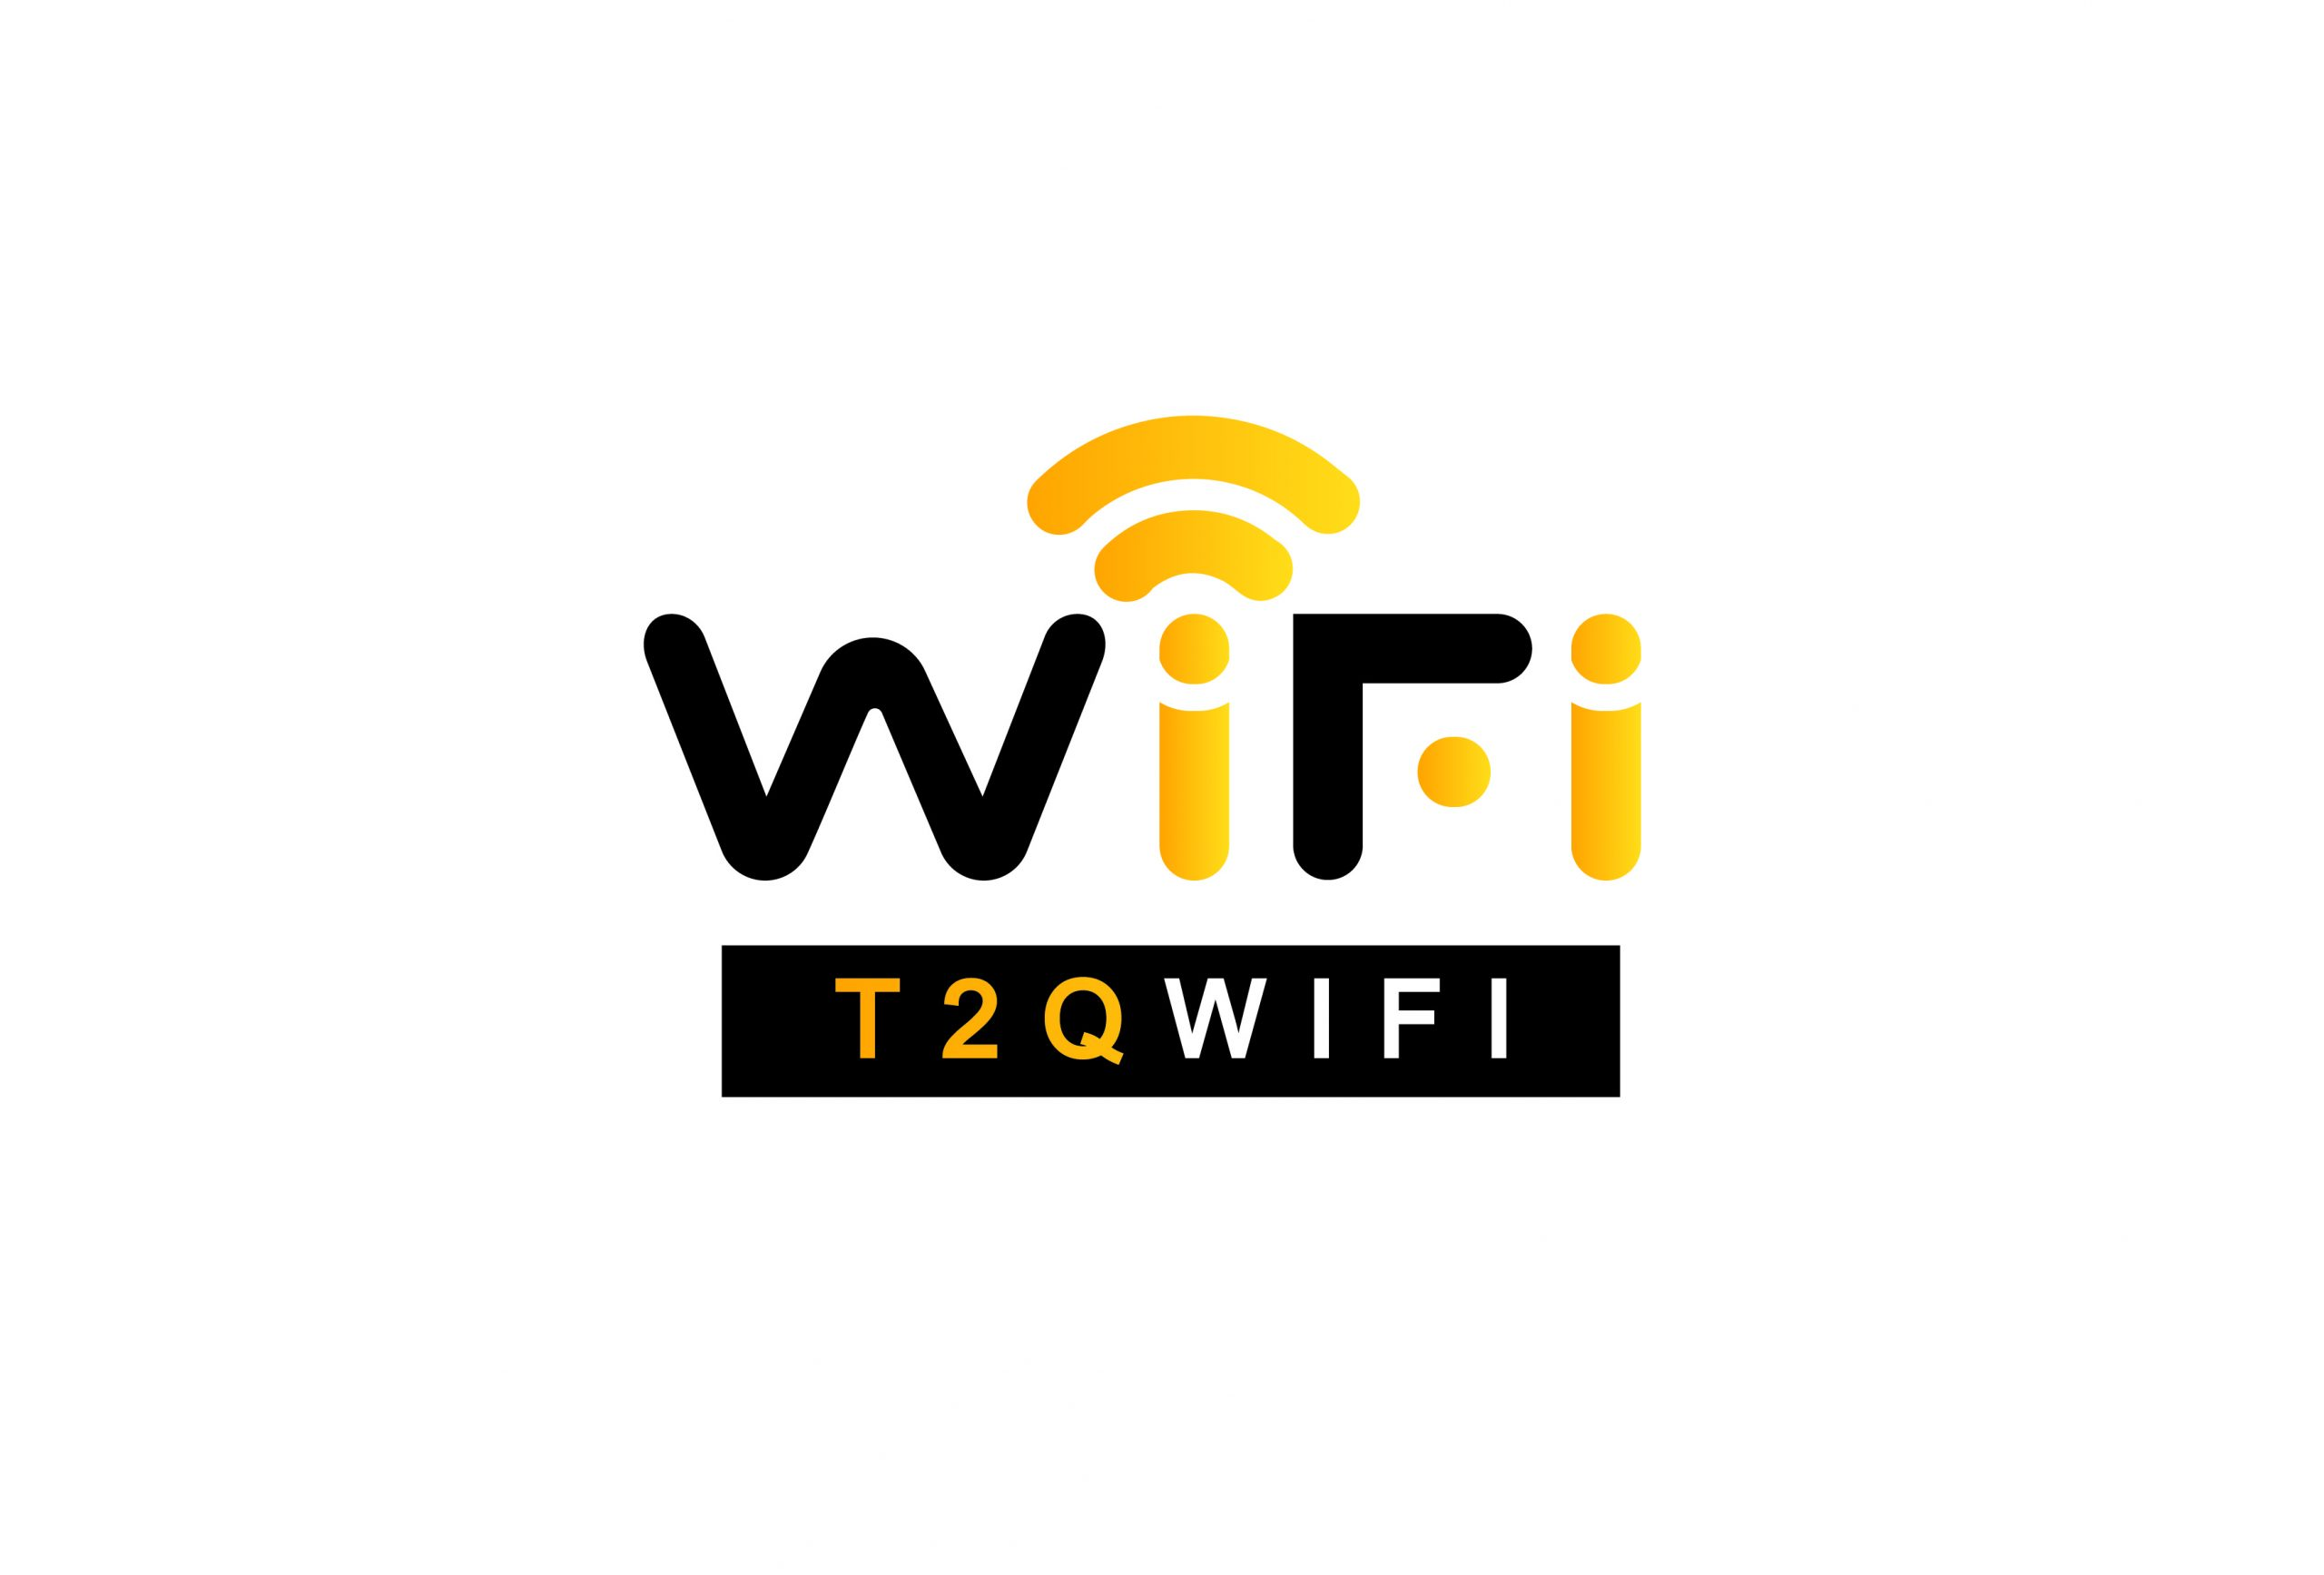 t2qwifi_ds-2cd2027g1-l2